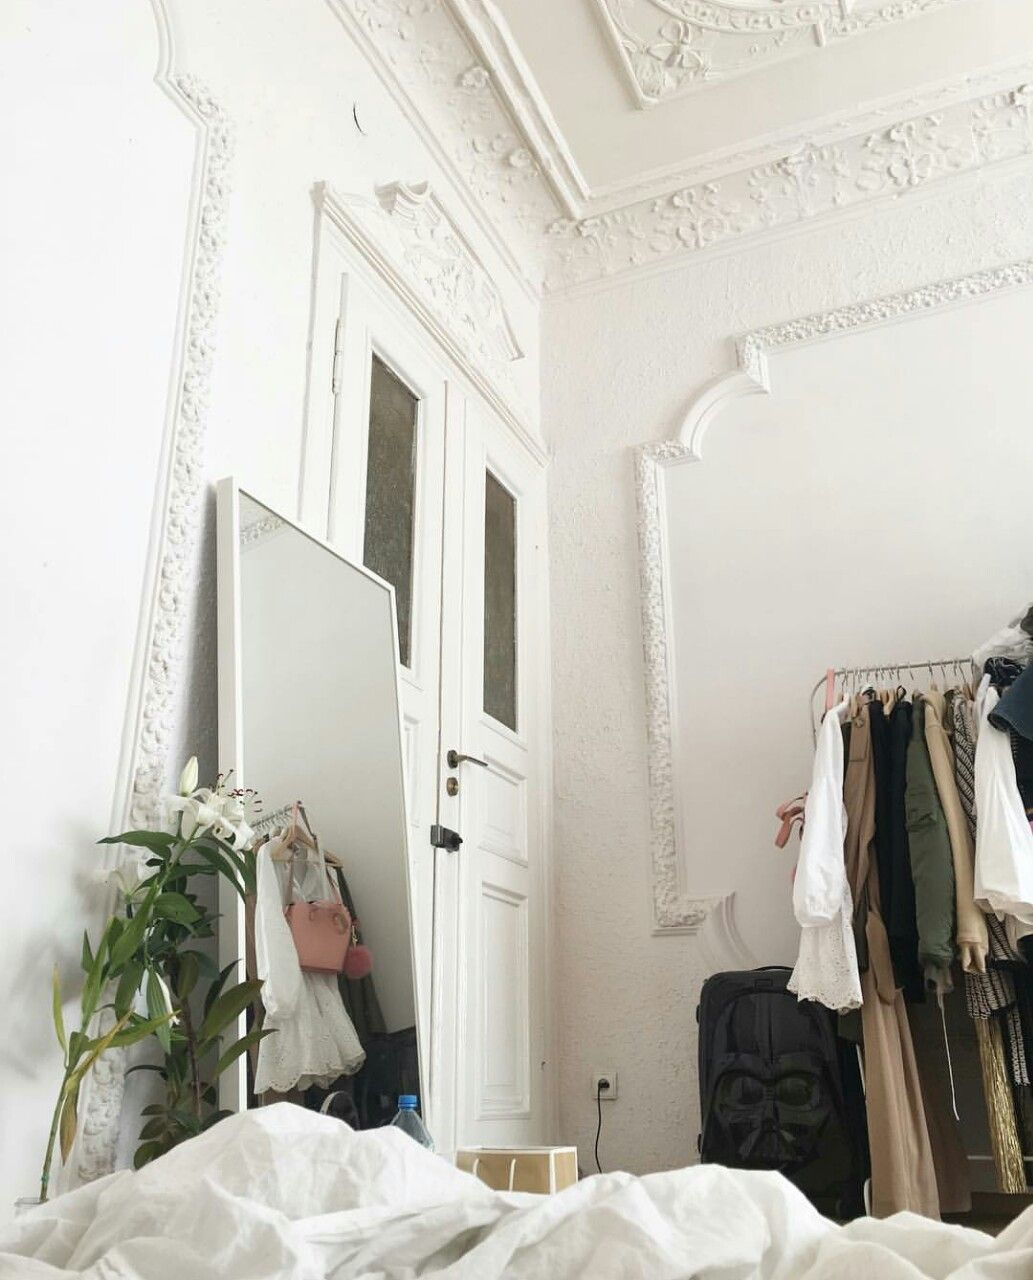 Pin by Mackenzie Gaines on home   Pinterest   Bedrooms, Interiors ...